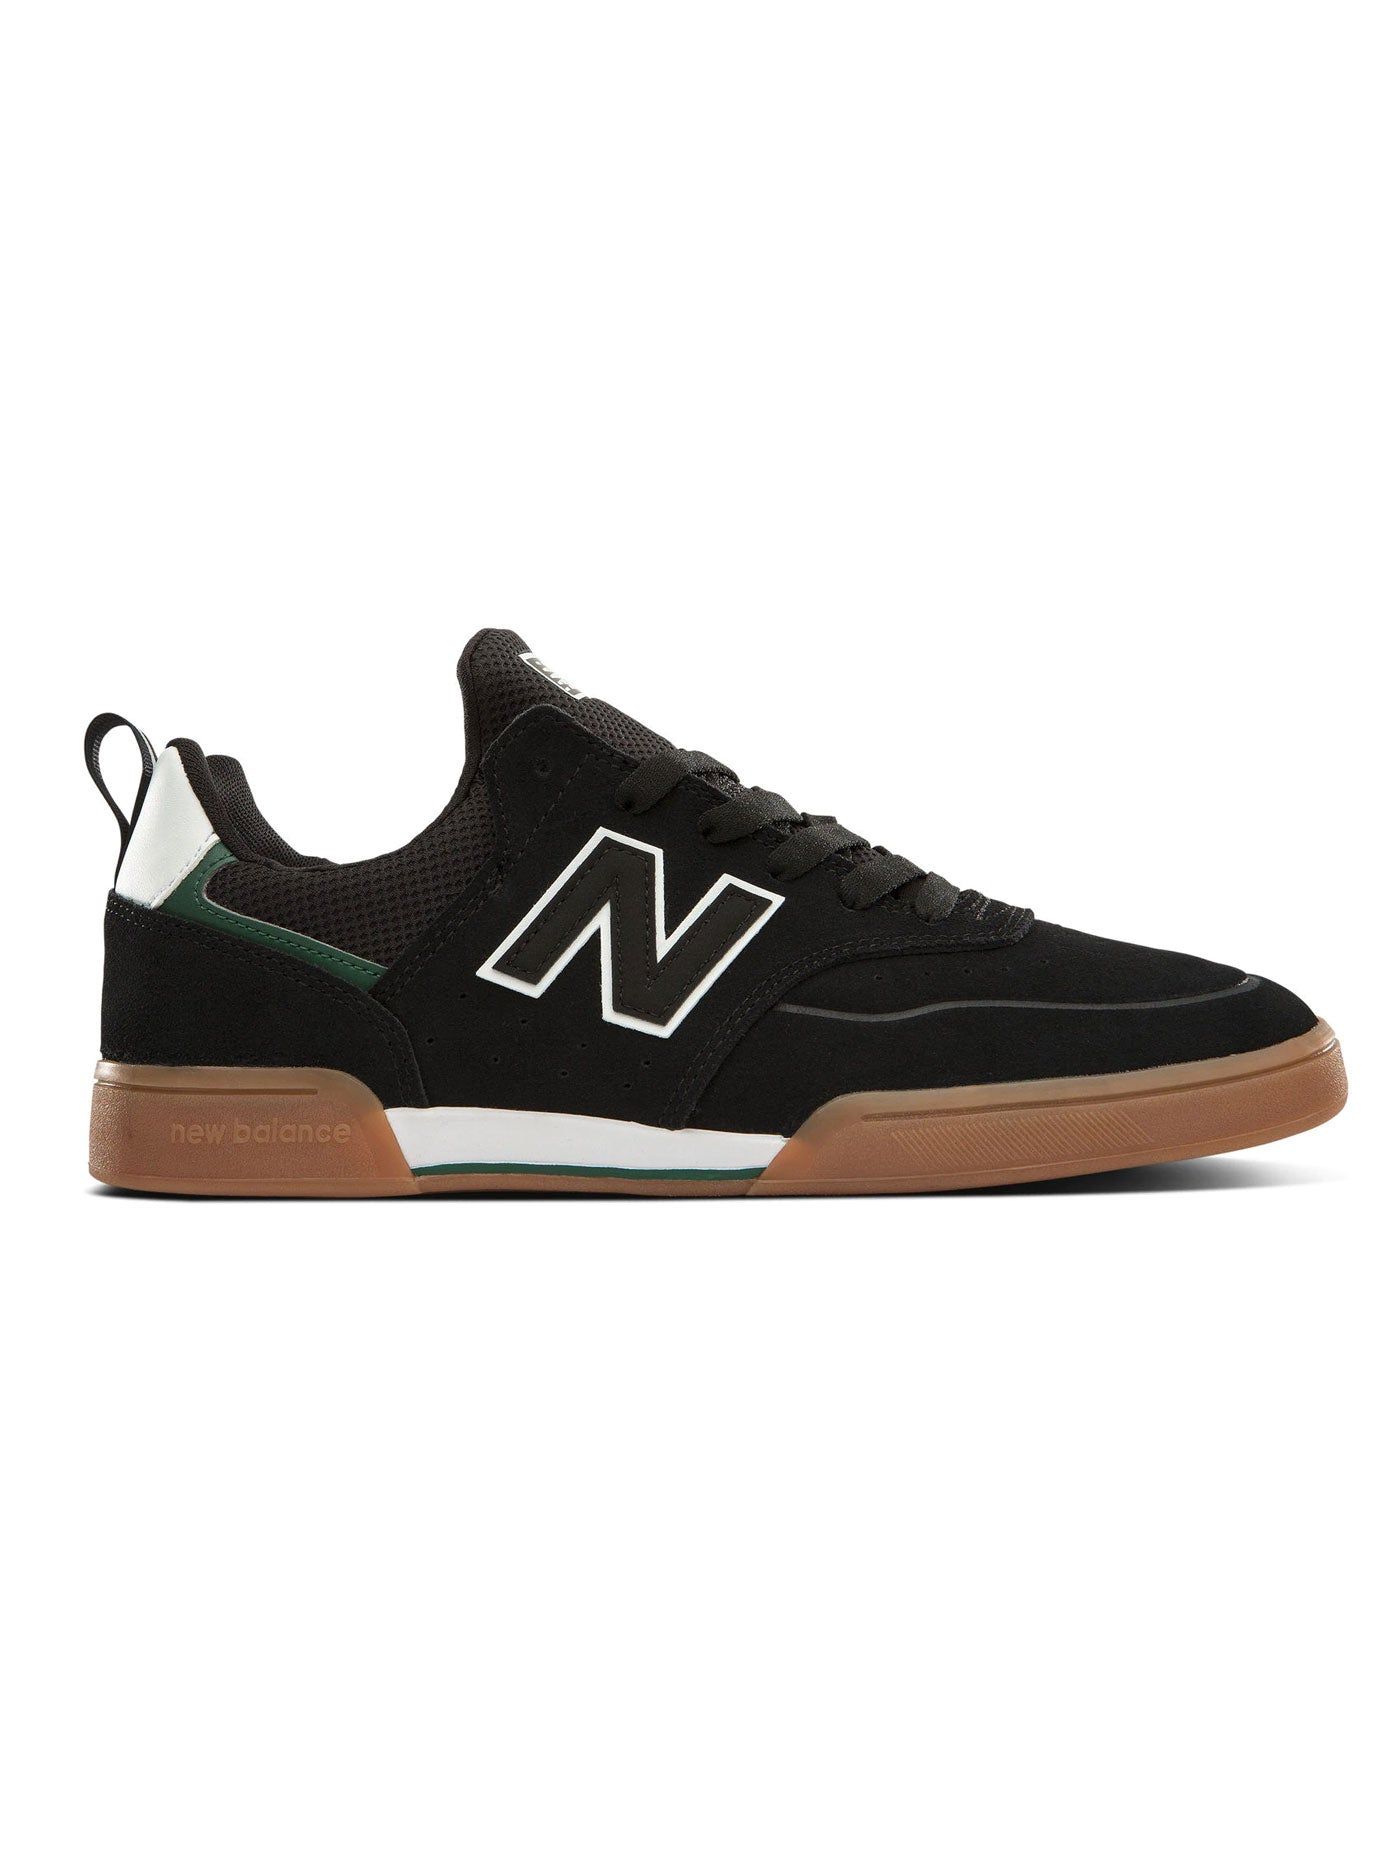 288S Numeric Shoes